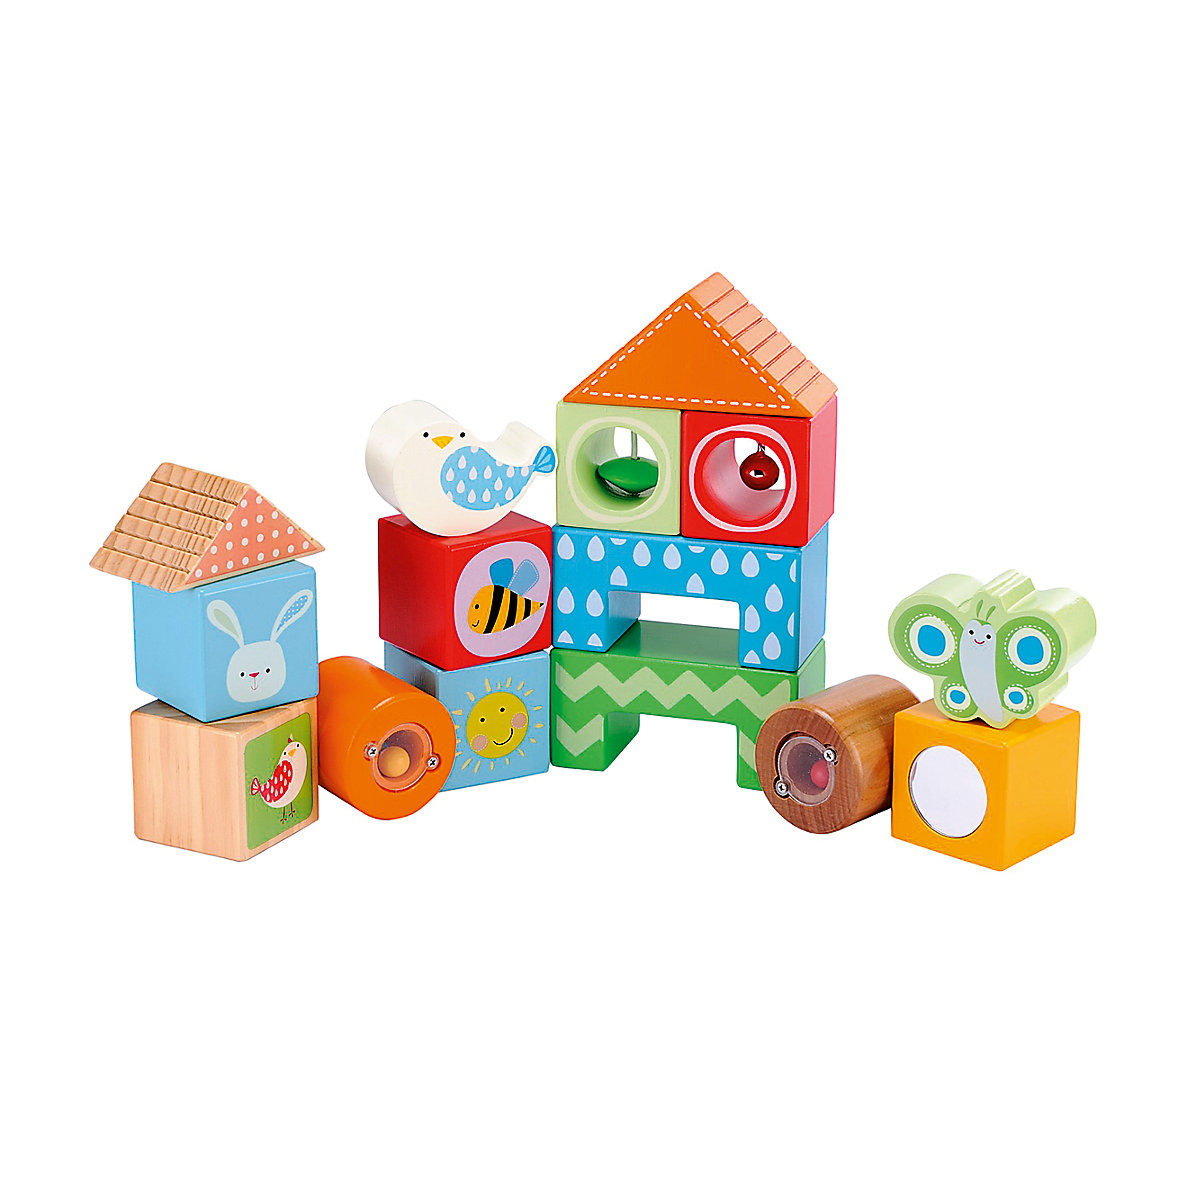 New ELC Boys and Girls Wooden Activity Bricks Toy From 12 months - Toddler Gifts